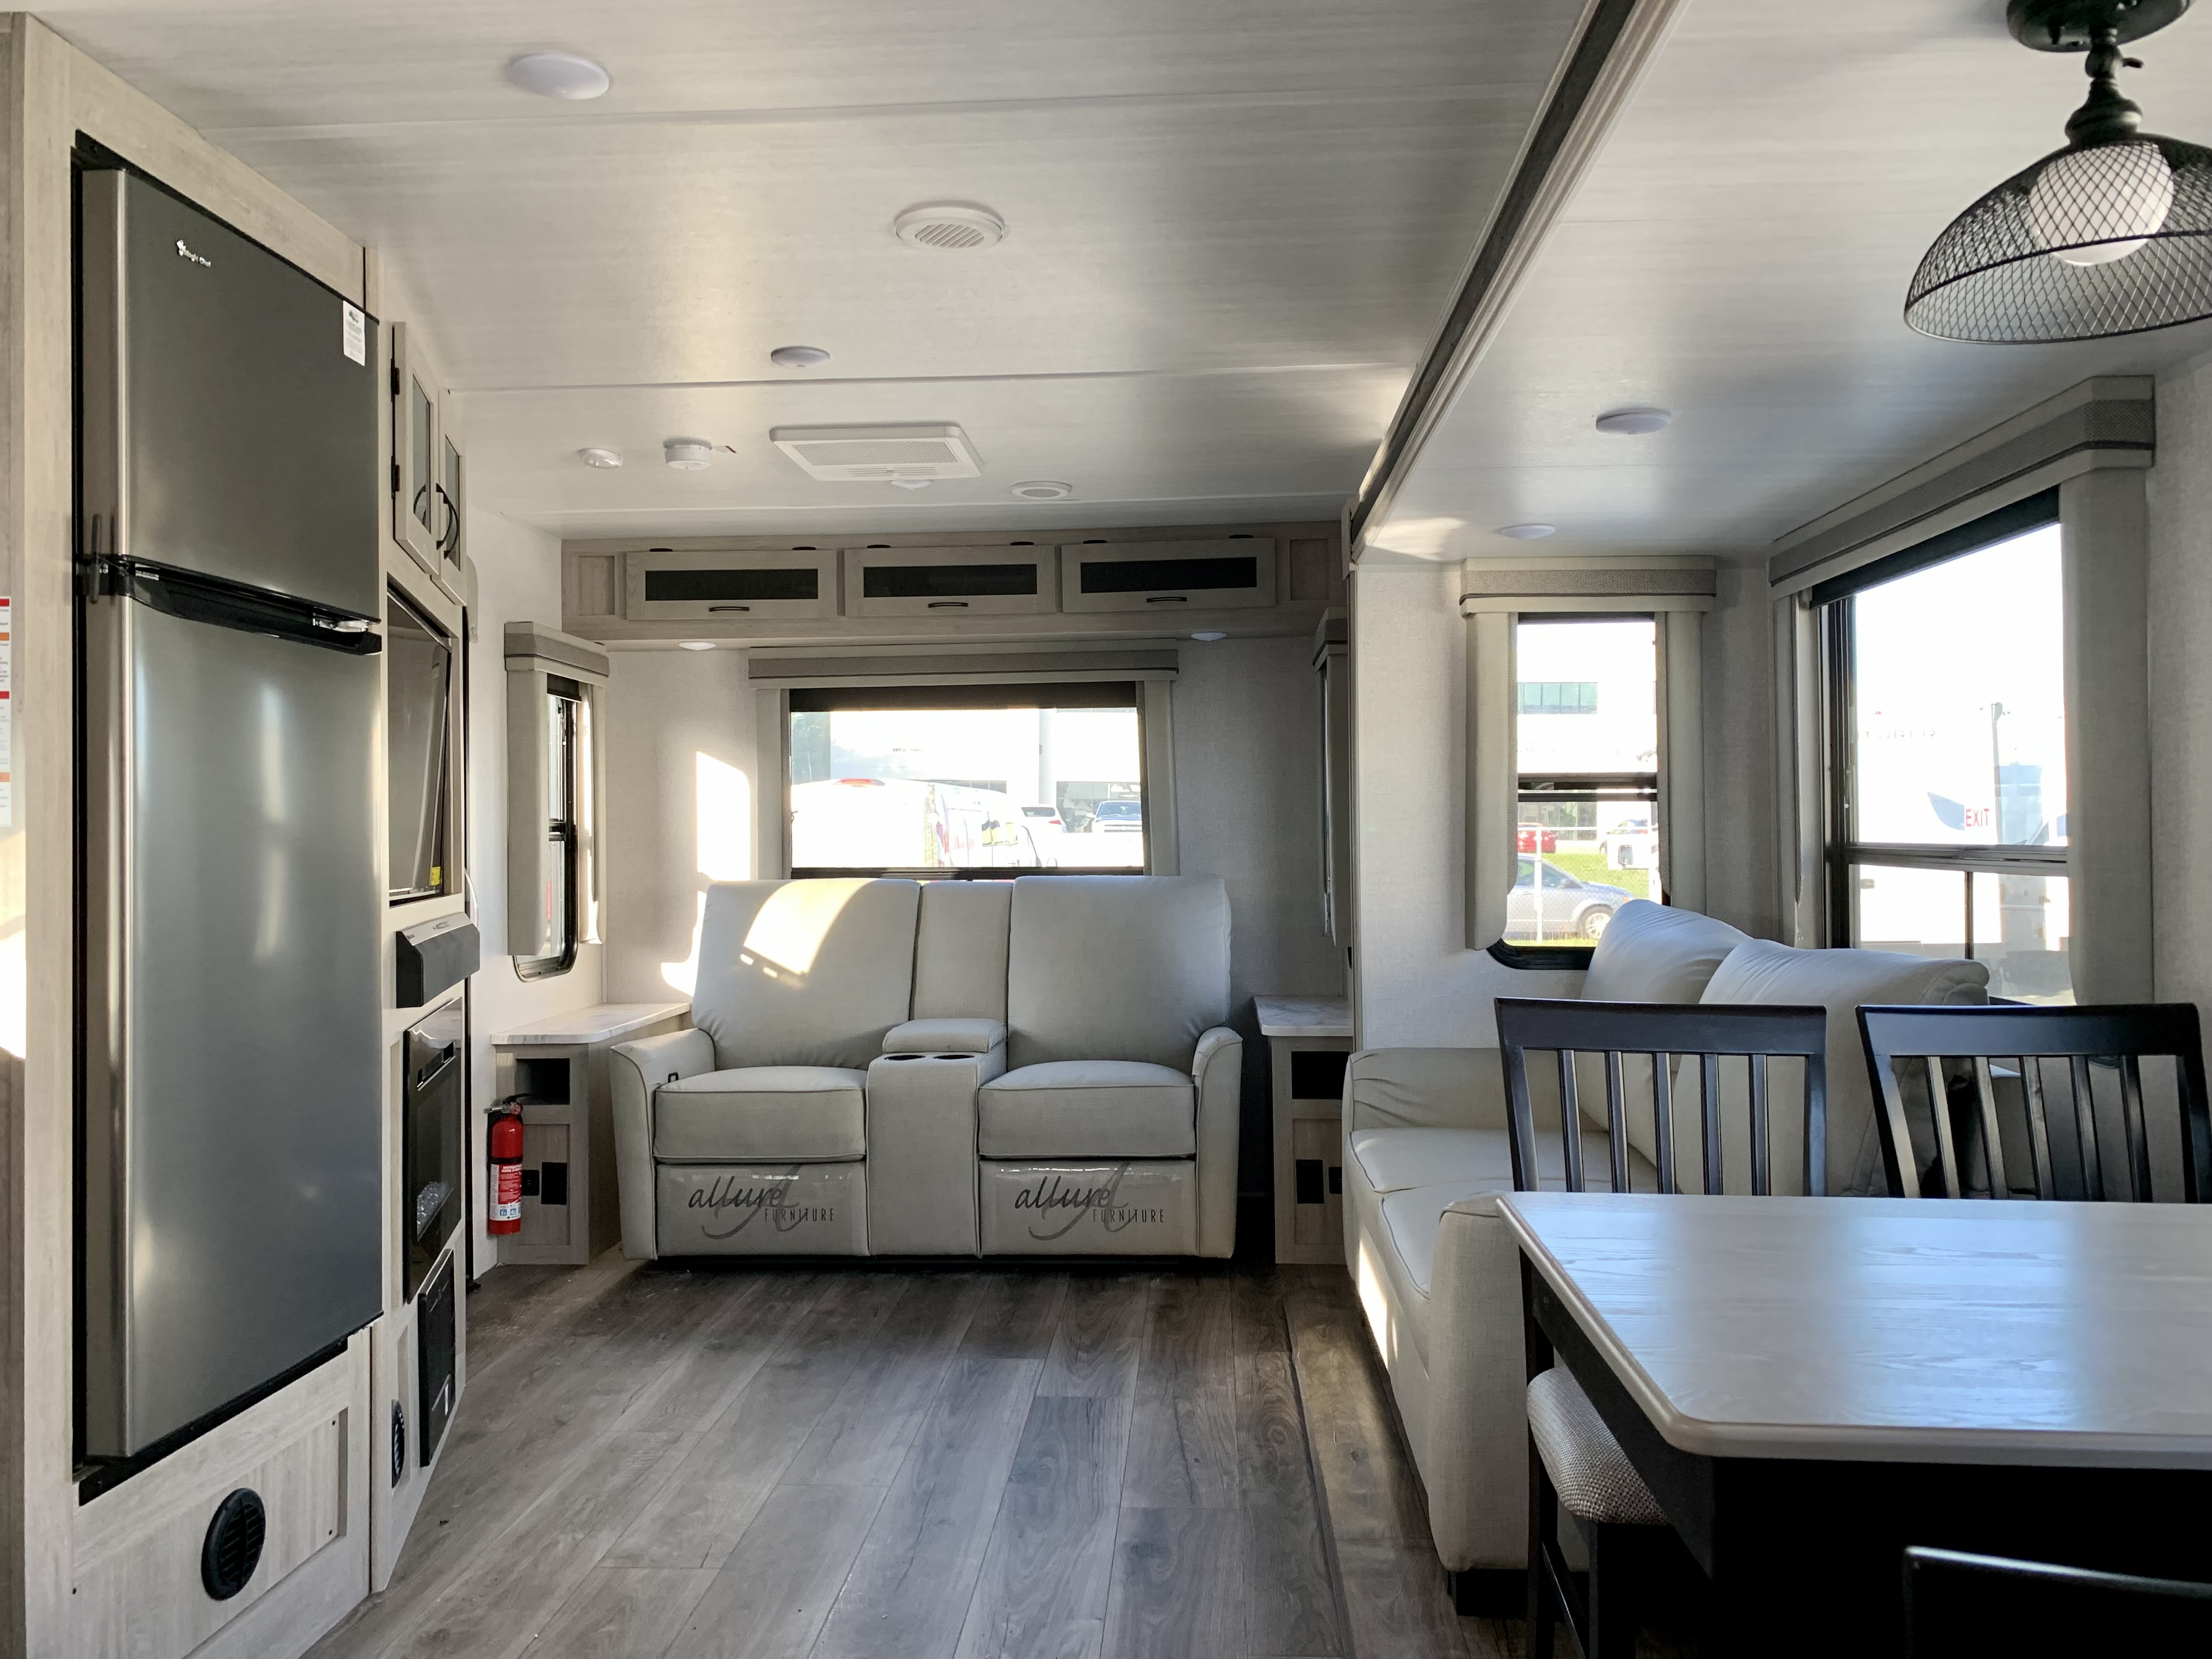 2022 EAST TO WEST RV ALTA 2850KRL NEW TRAVEL TRAILER FOR SALE HALIFAX NS